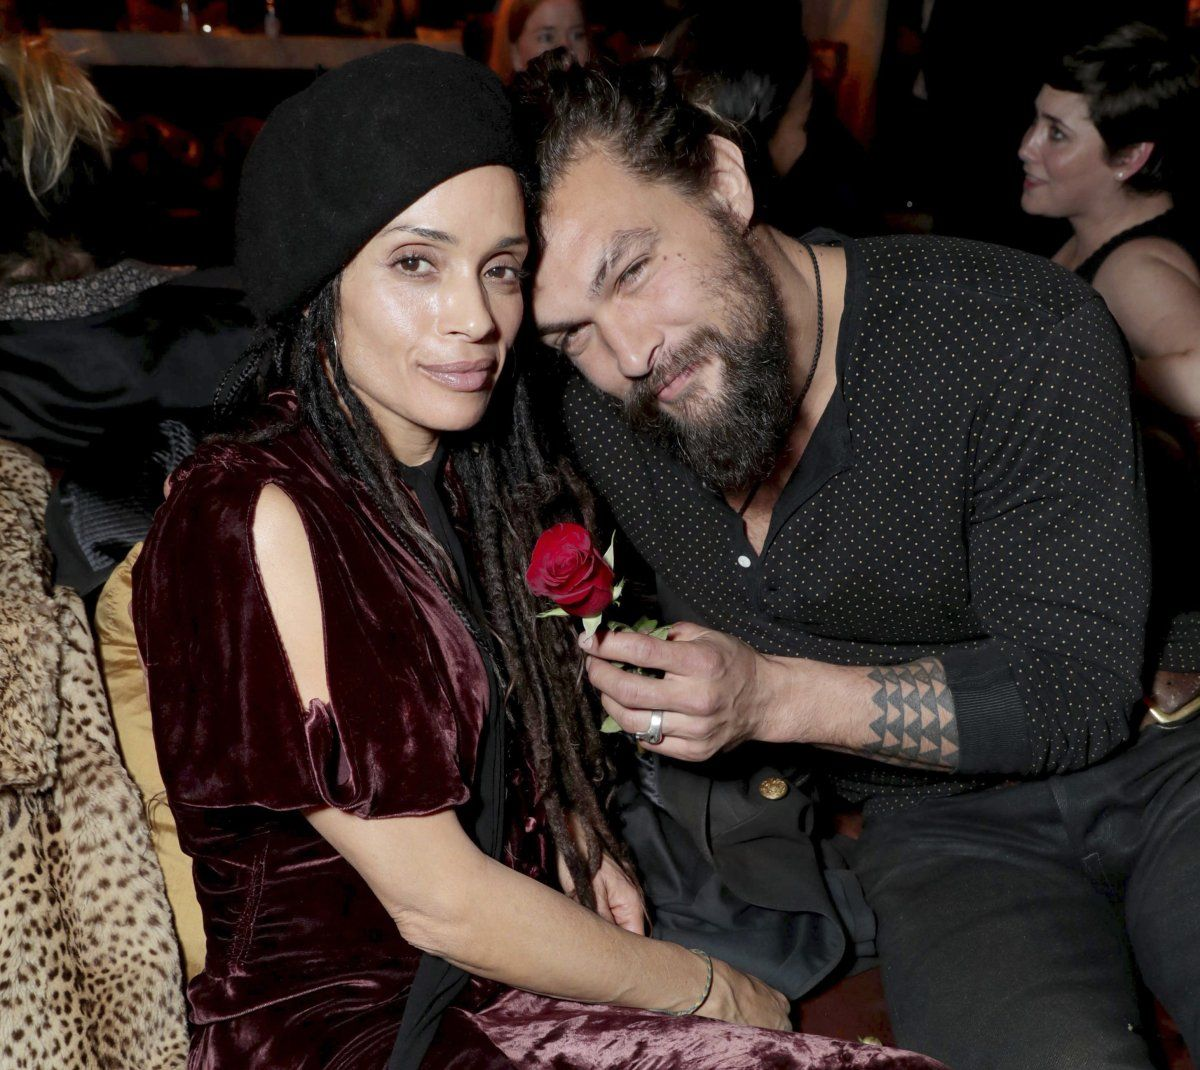 Jason and Lisa smiling for a picture. Jason is holding a red rose. Both are wearing black attire